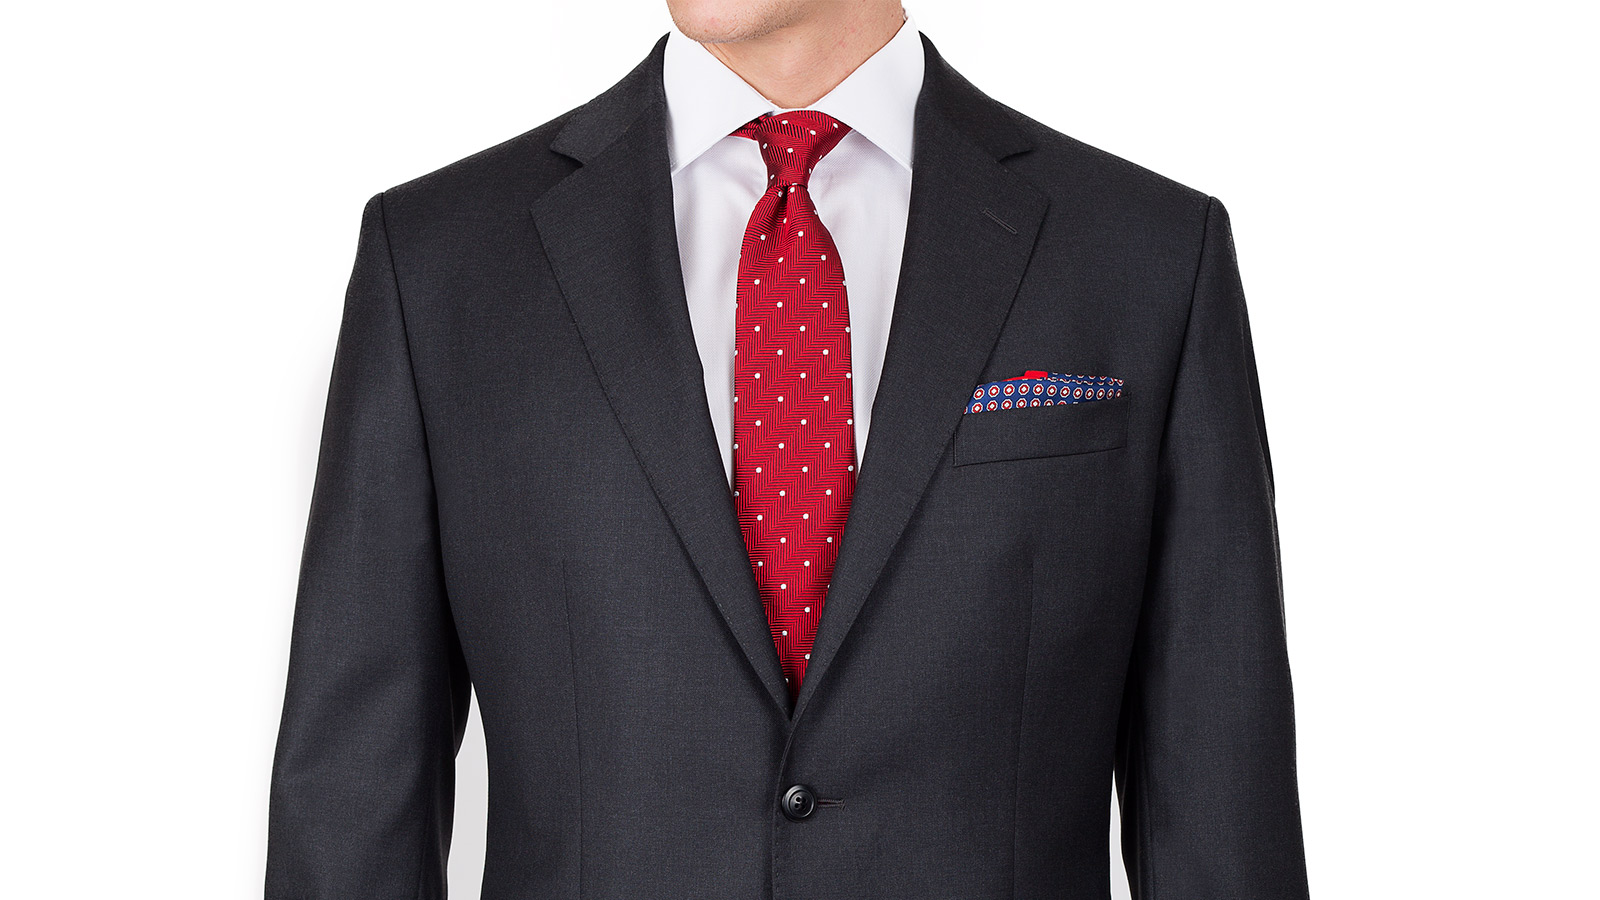 Suit in Solid Charcoal Wool - slider image